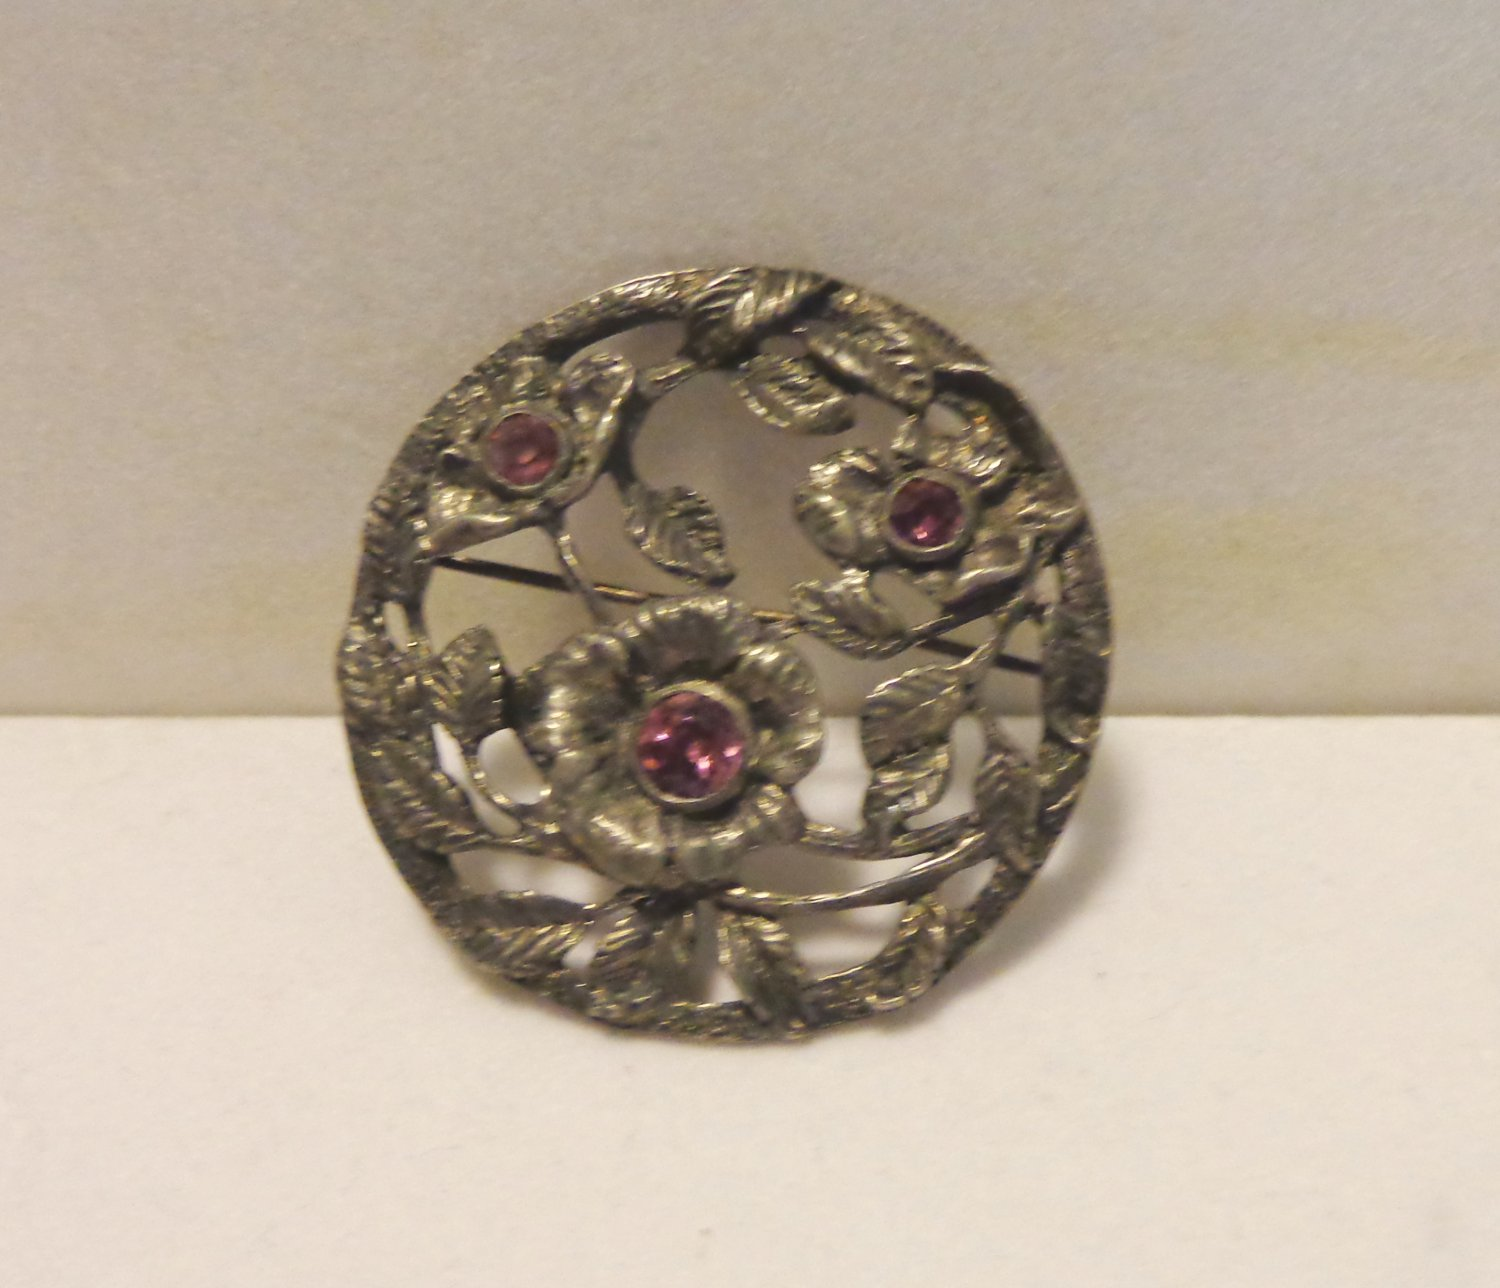 Coro February brooch primrose amethyst pot metal signed antique vintage ll3473